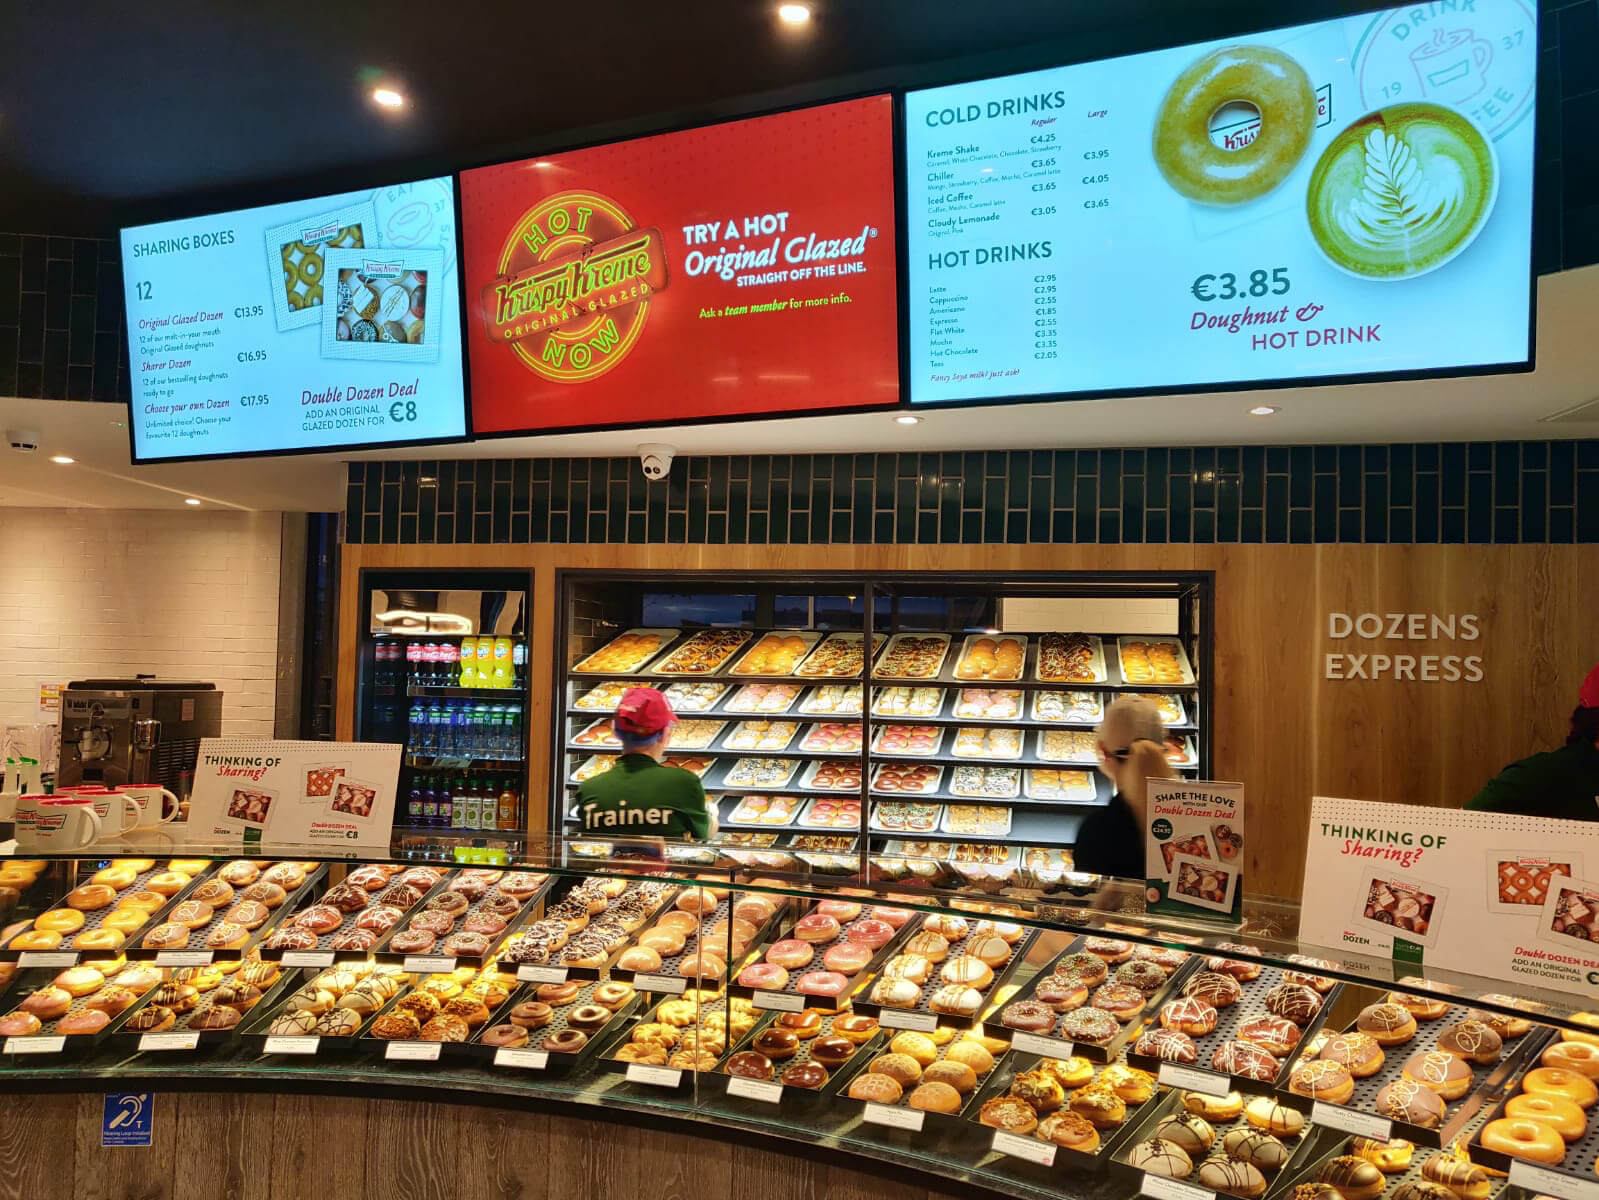 eclipse digital media - digital signage and av - digital menu boards - krispy kreme doughnuts